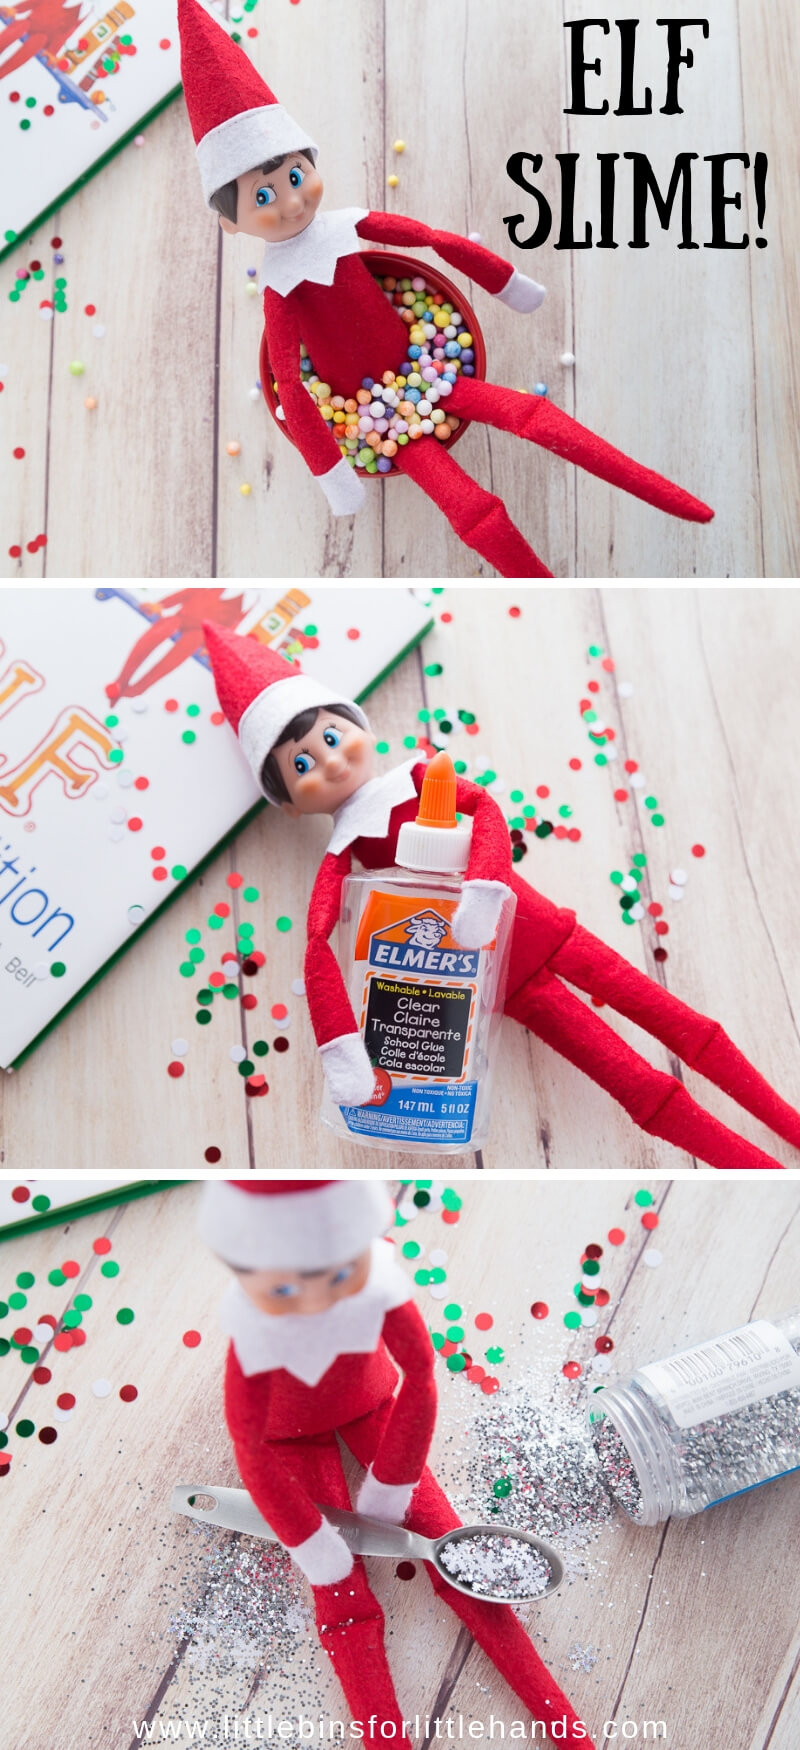 Elf on the Shelf Slime Poses with Slime Supplies